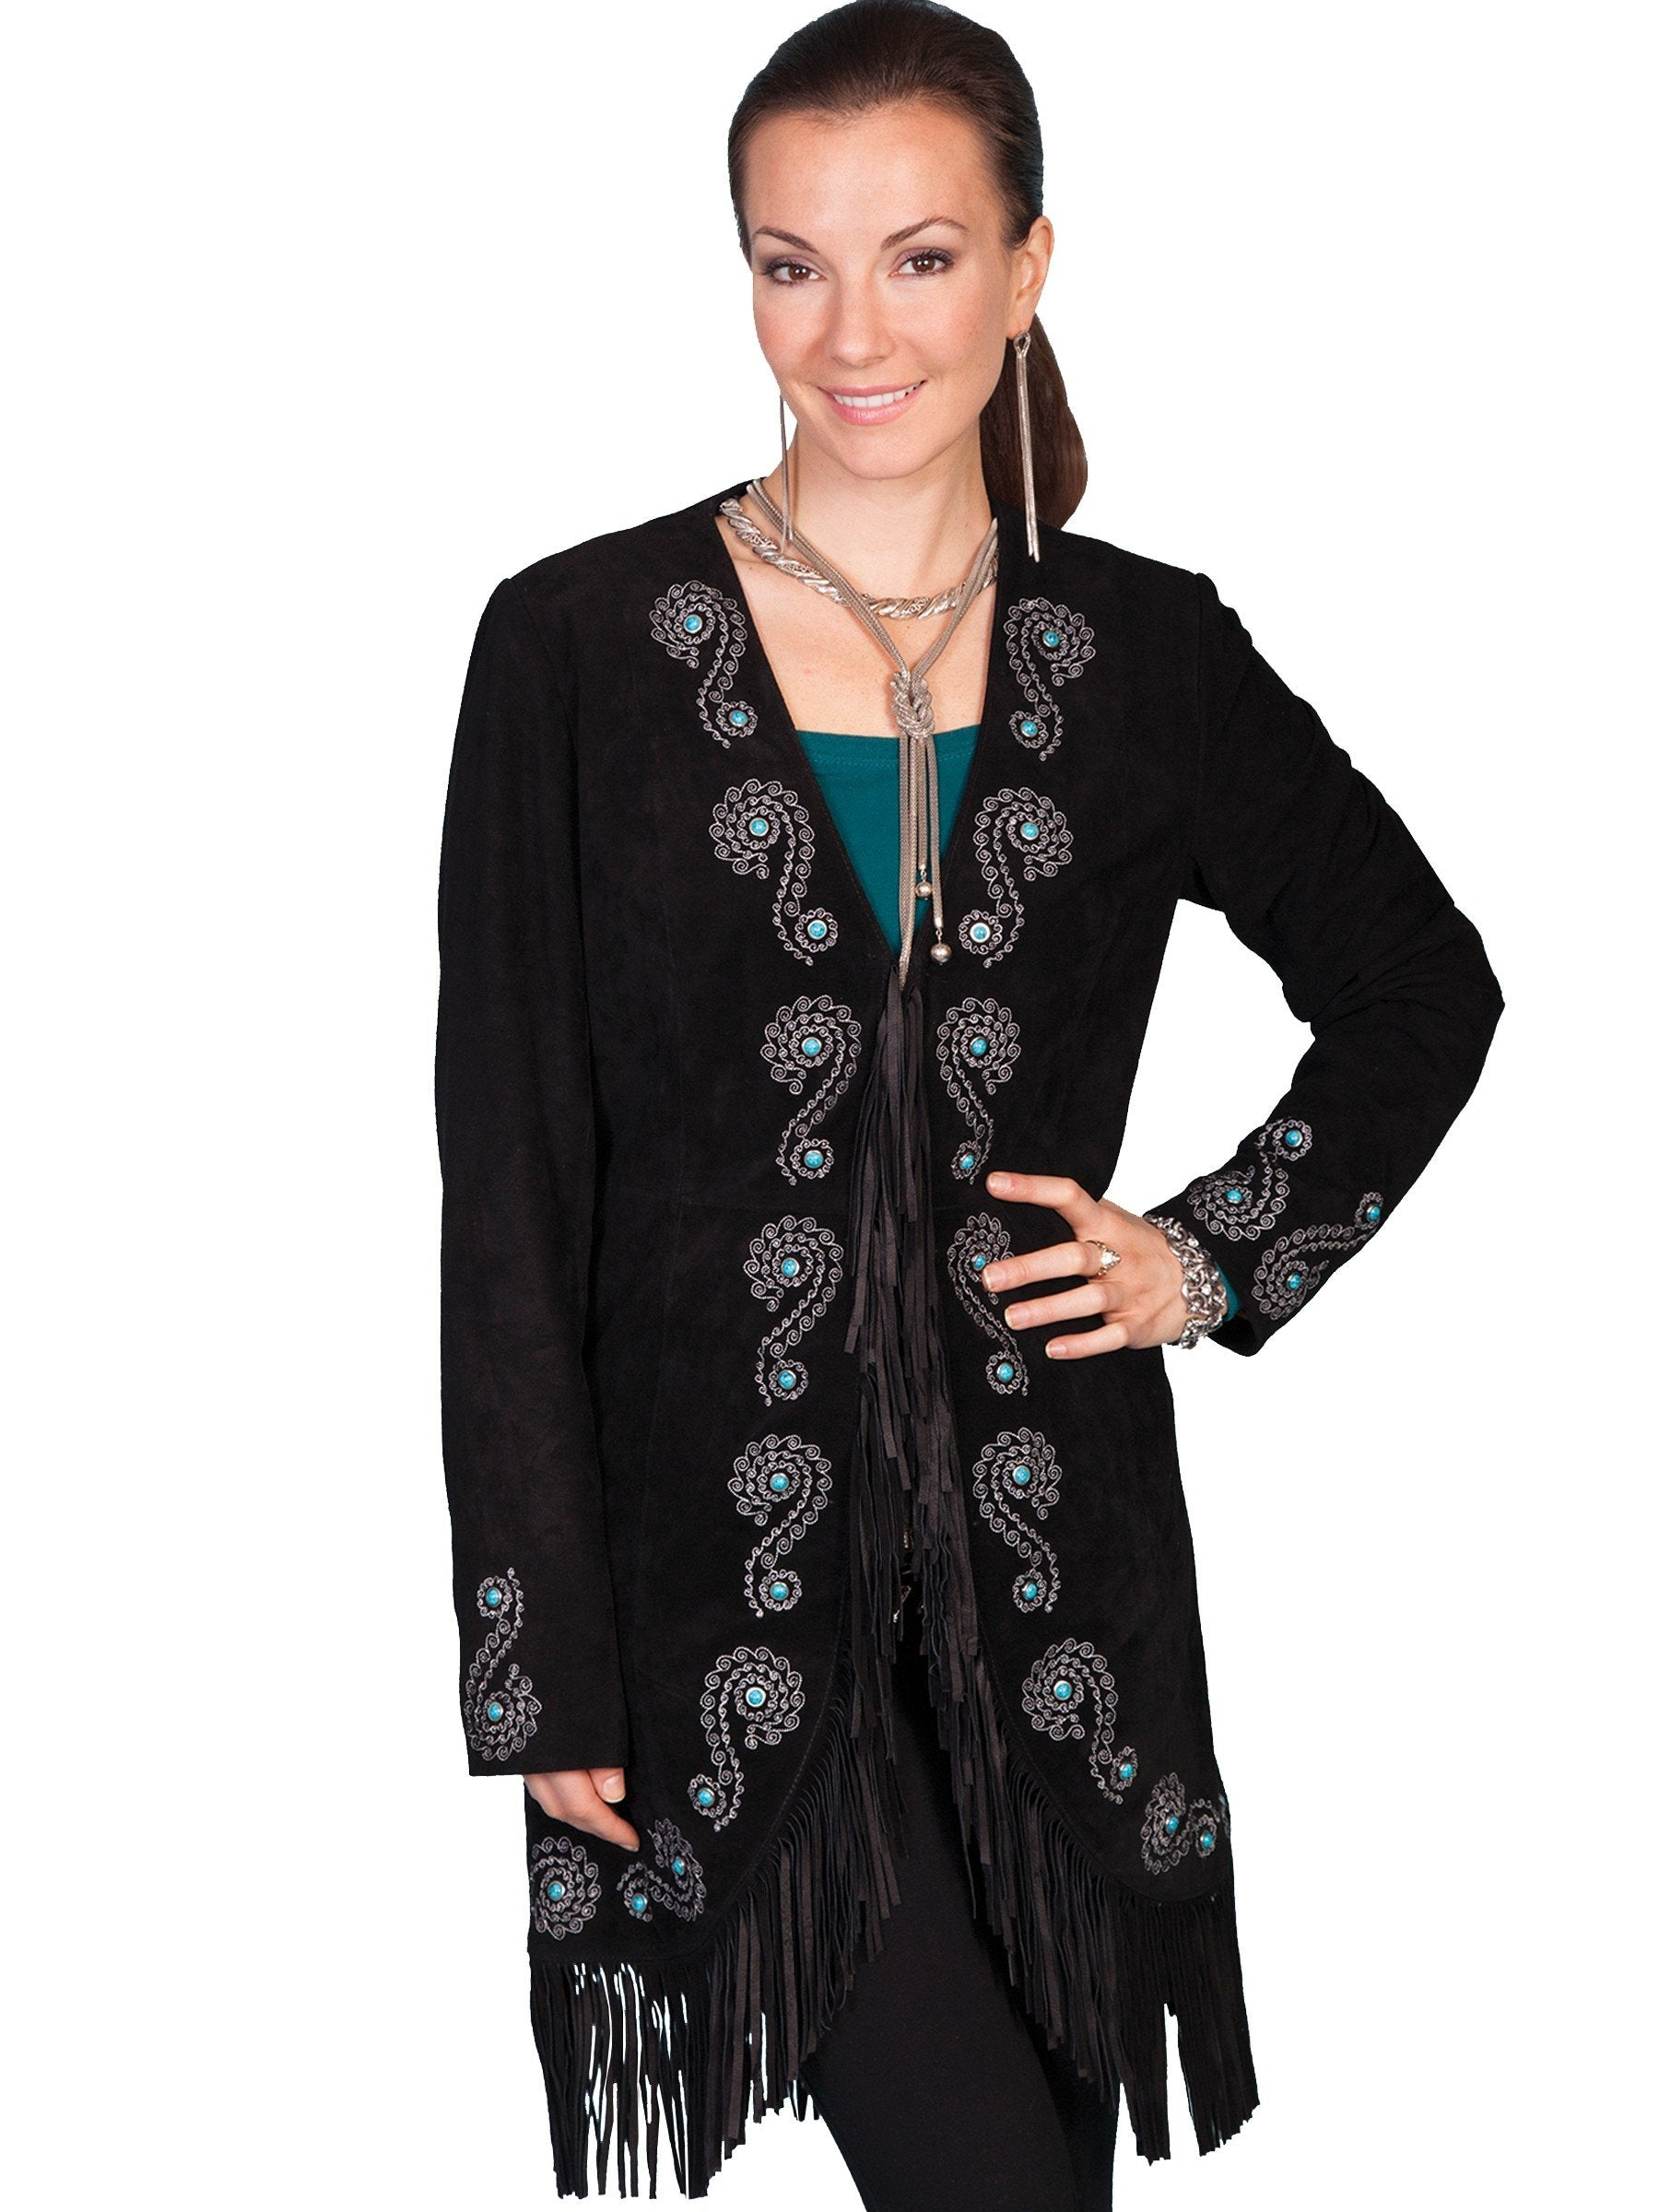 70s Outfits – 70s Style Ideas for Women Desert Rose Suede Coat in Black $265.00 AT vintagedancer.com